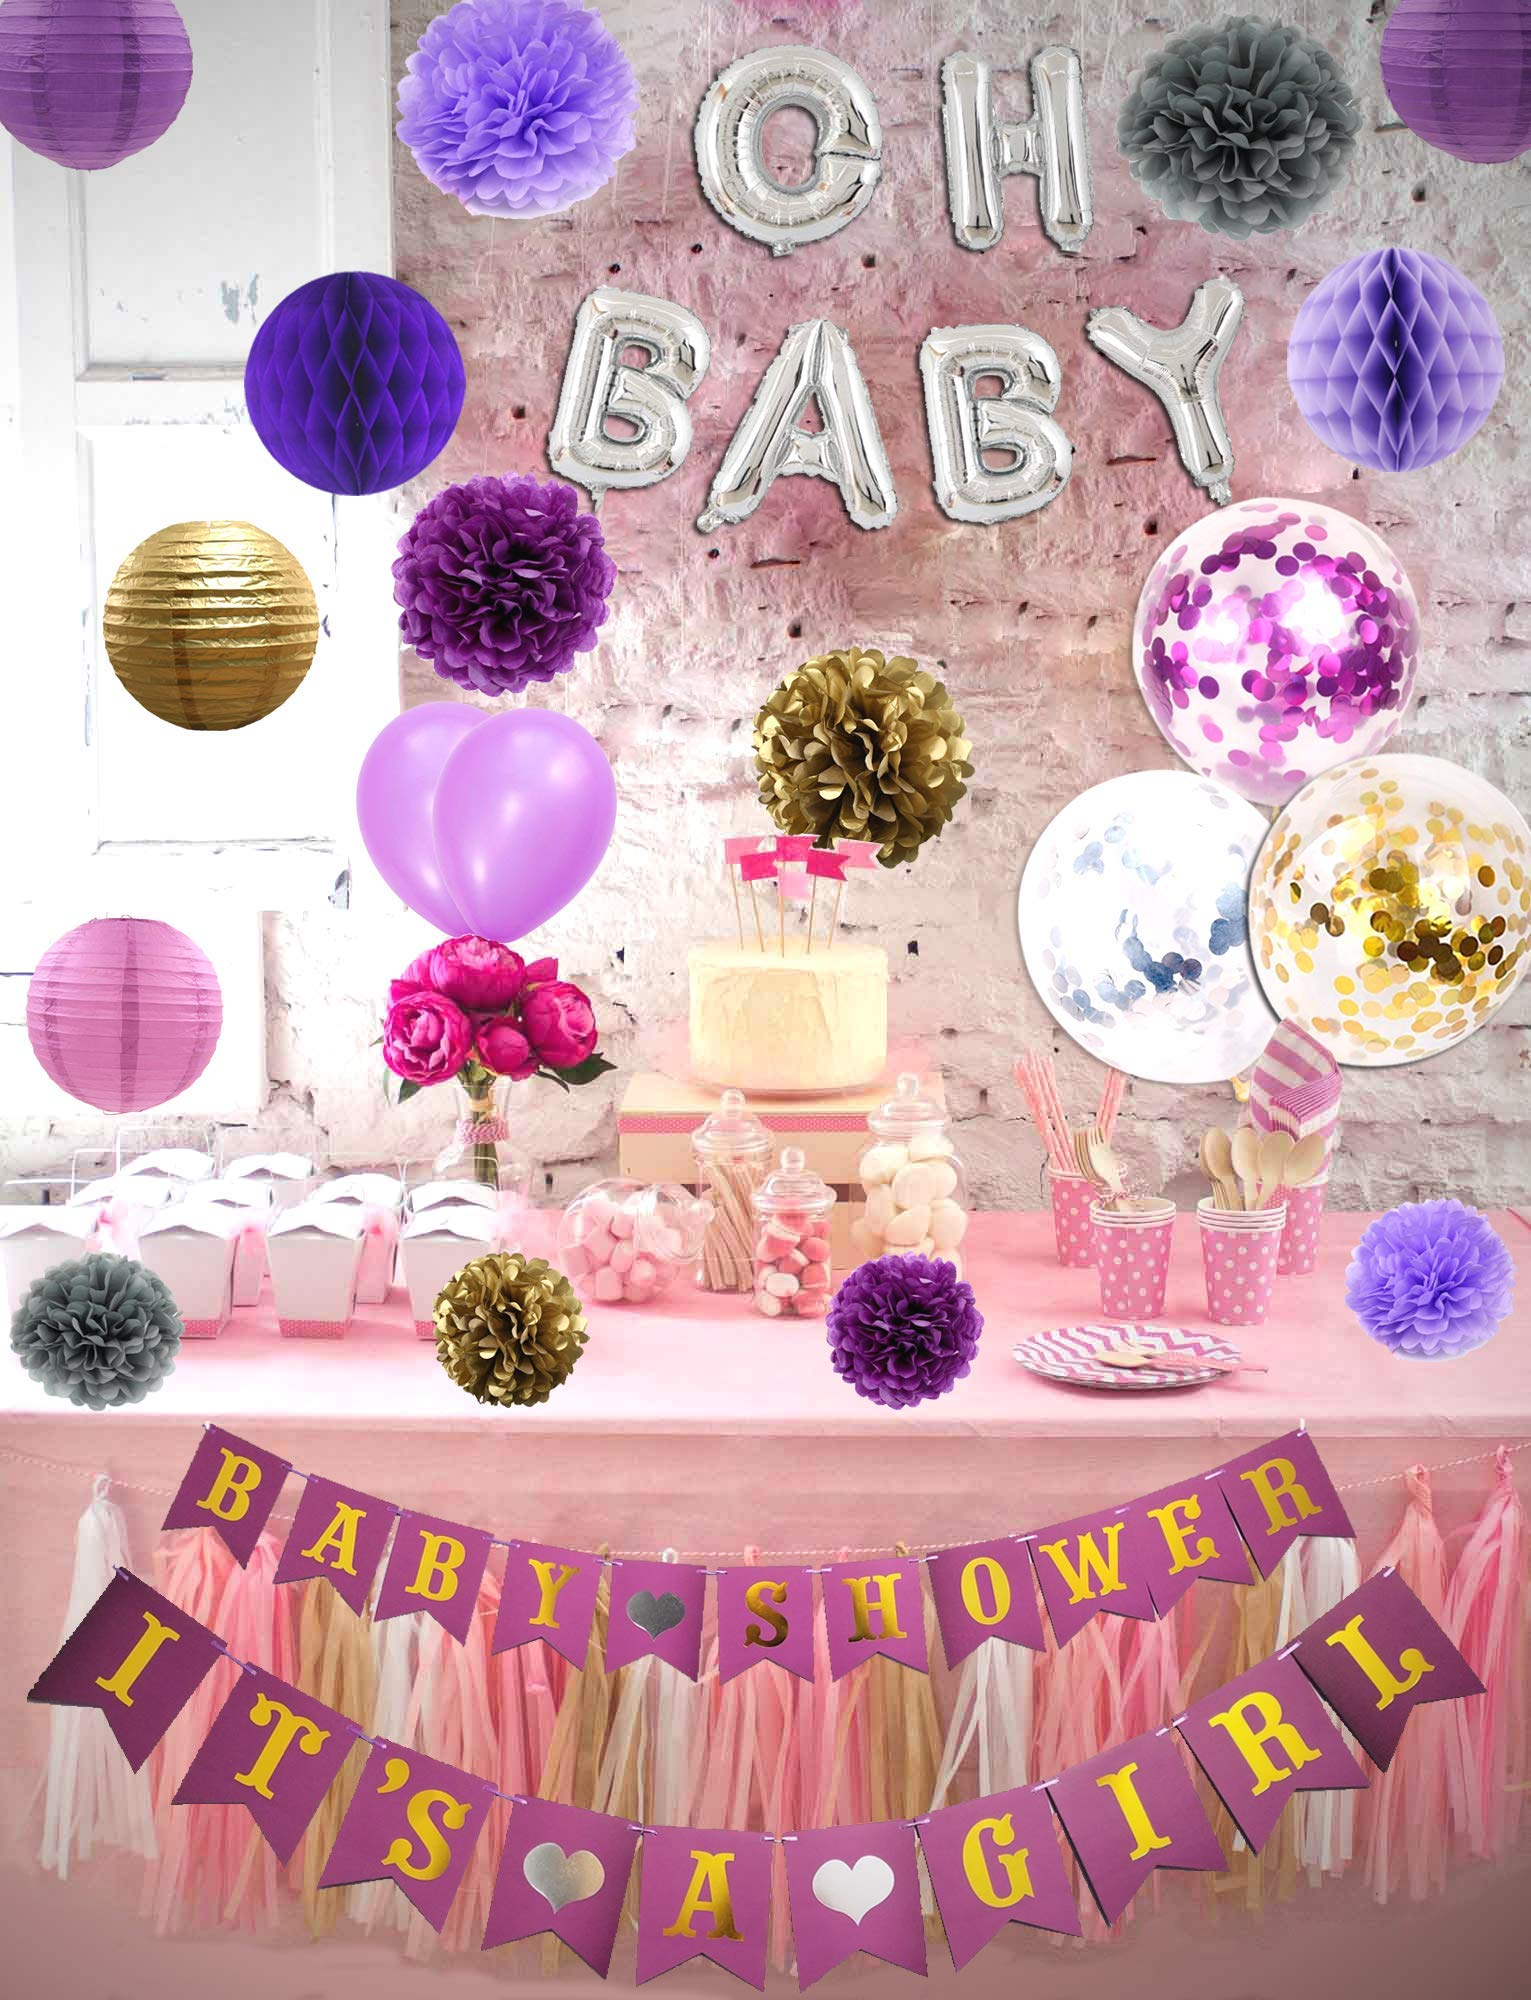 Baby Shower, Party and Nursery Room Decorations- BABY SHOWER & IT'S A GIRL Banners, OH BABY inflatable balloon, Pom Poms Paper, Lanterns, Honeycomb Balls Purple/Gold/Silver,Confetti Balloons